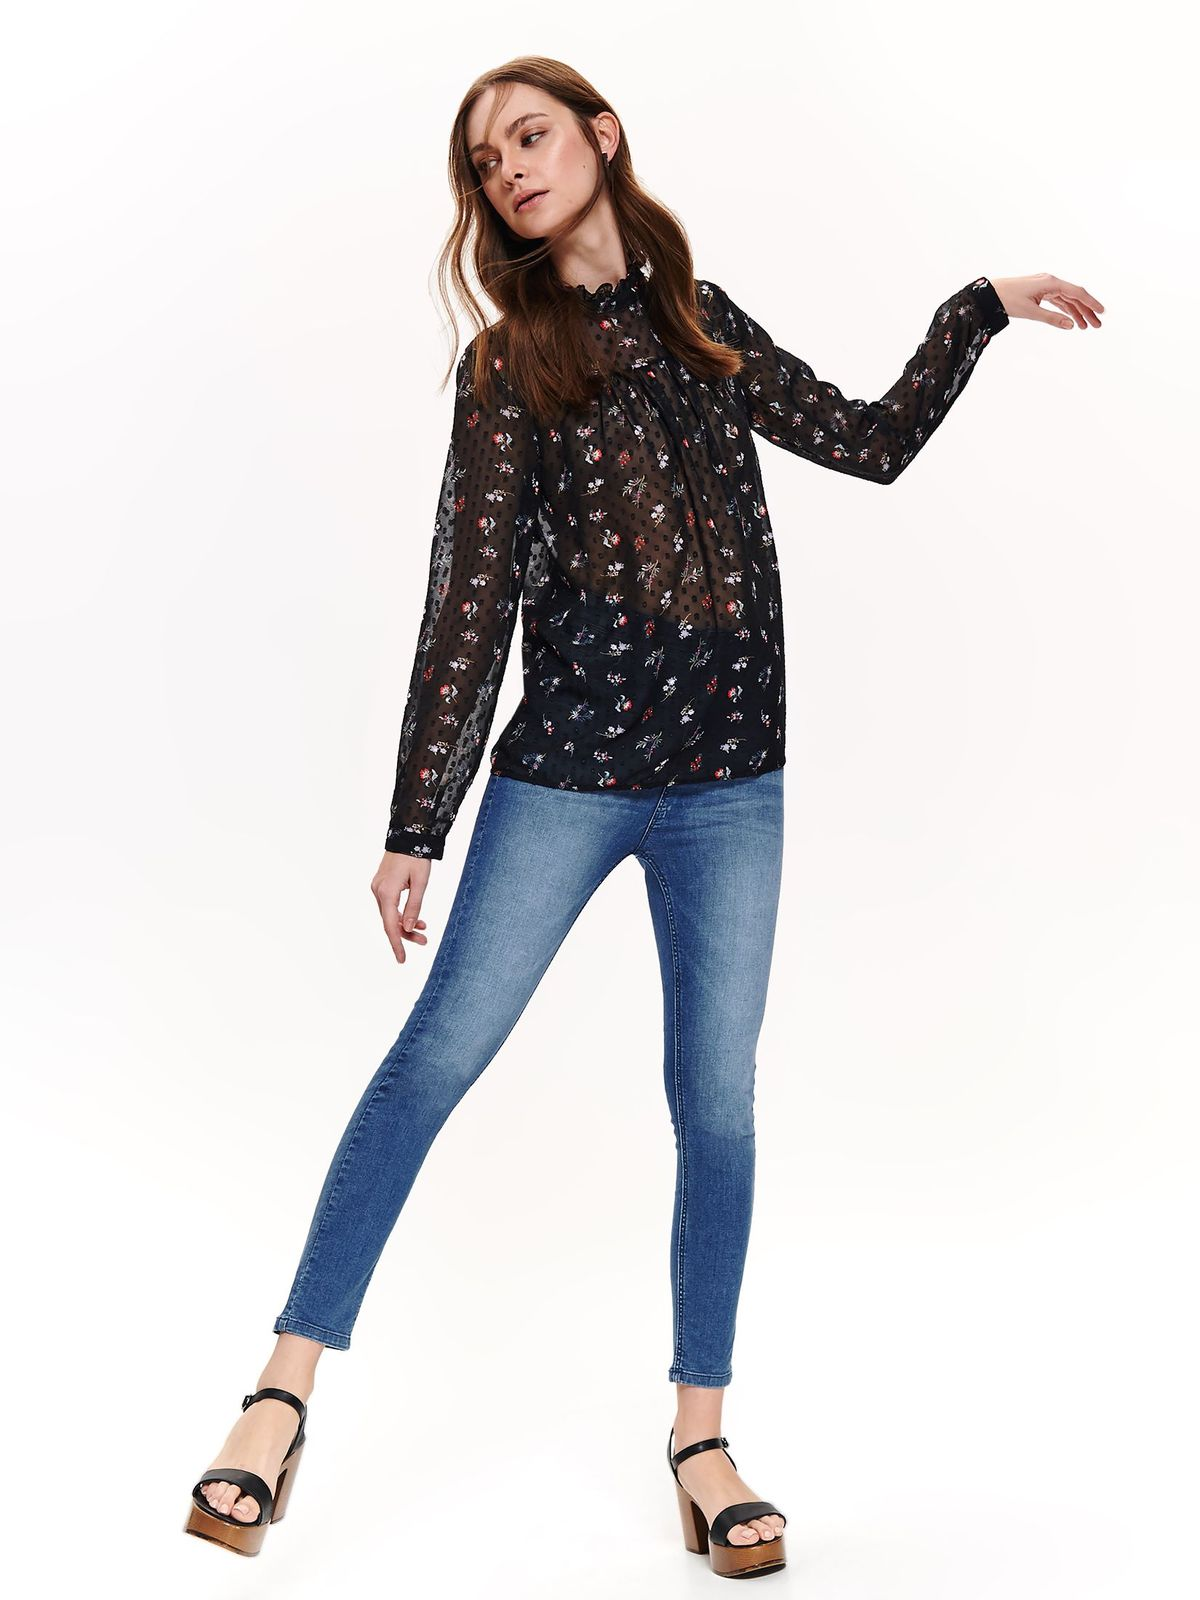 Top Secret black casual flared women`s blouse thin fabric with floral prints